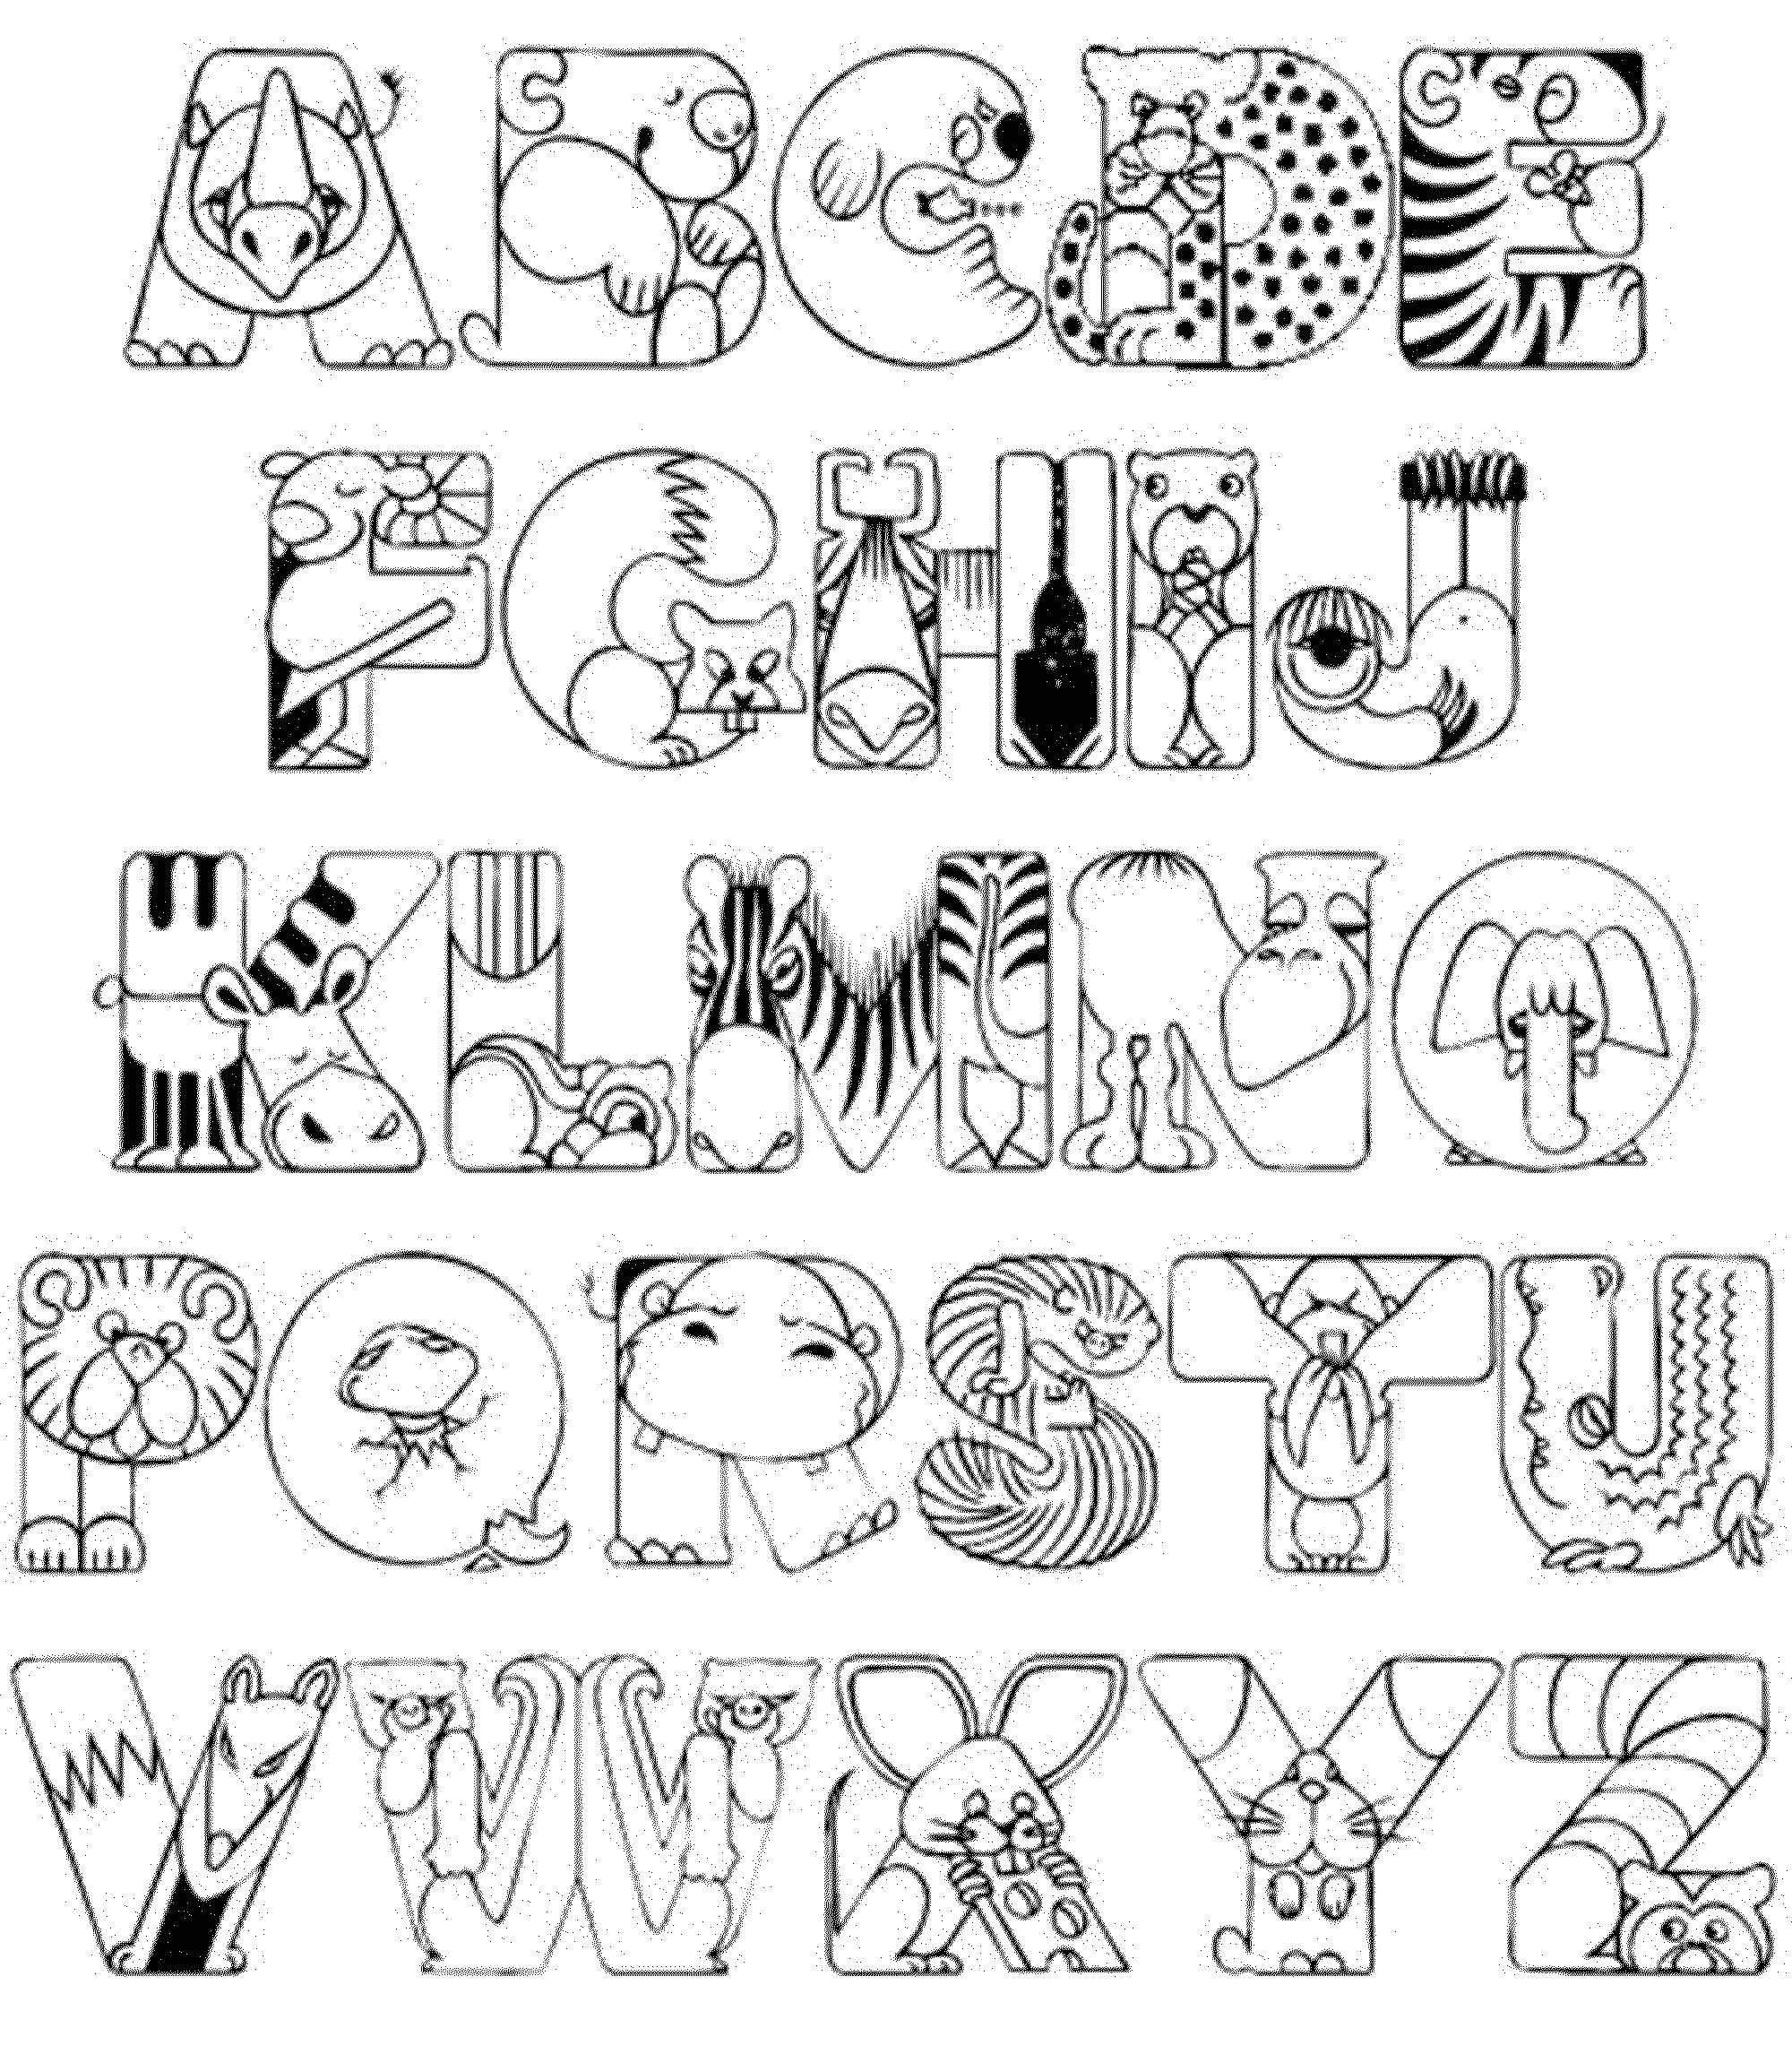 Abc Coloring Pages New Abccoloringpagesforkindergarten   Bestappsforkids Inspiration Design